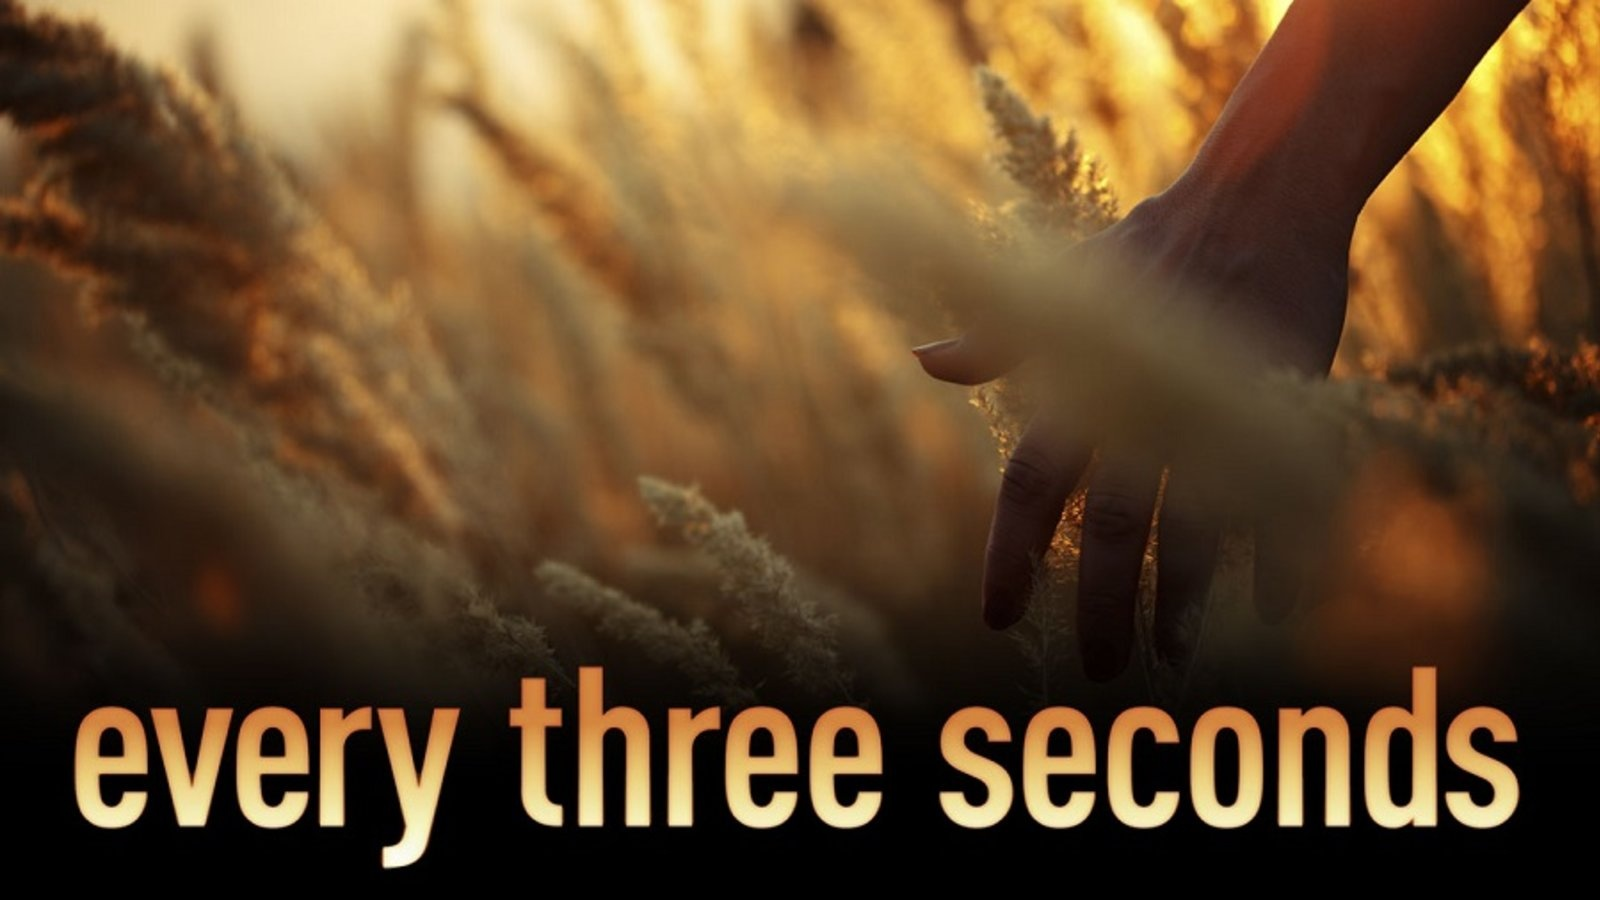 Every Three Seconds (available on demand)